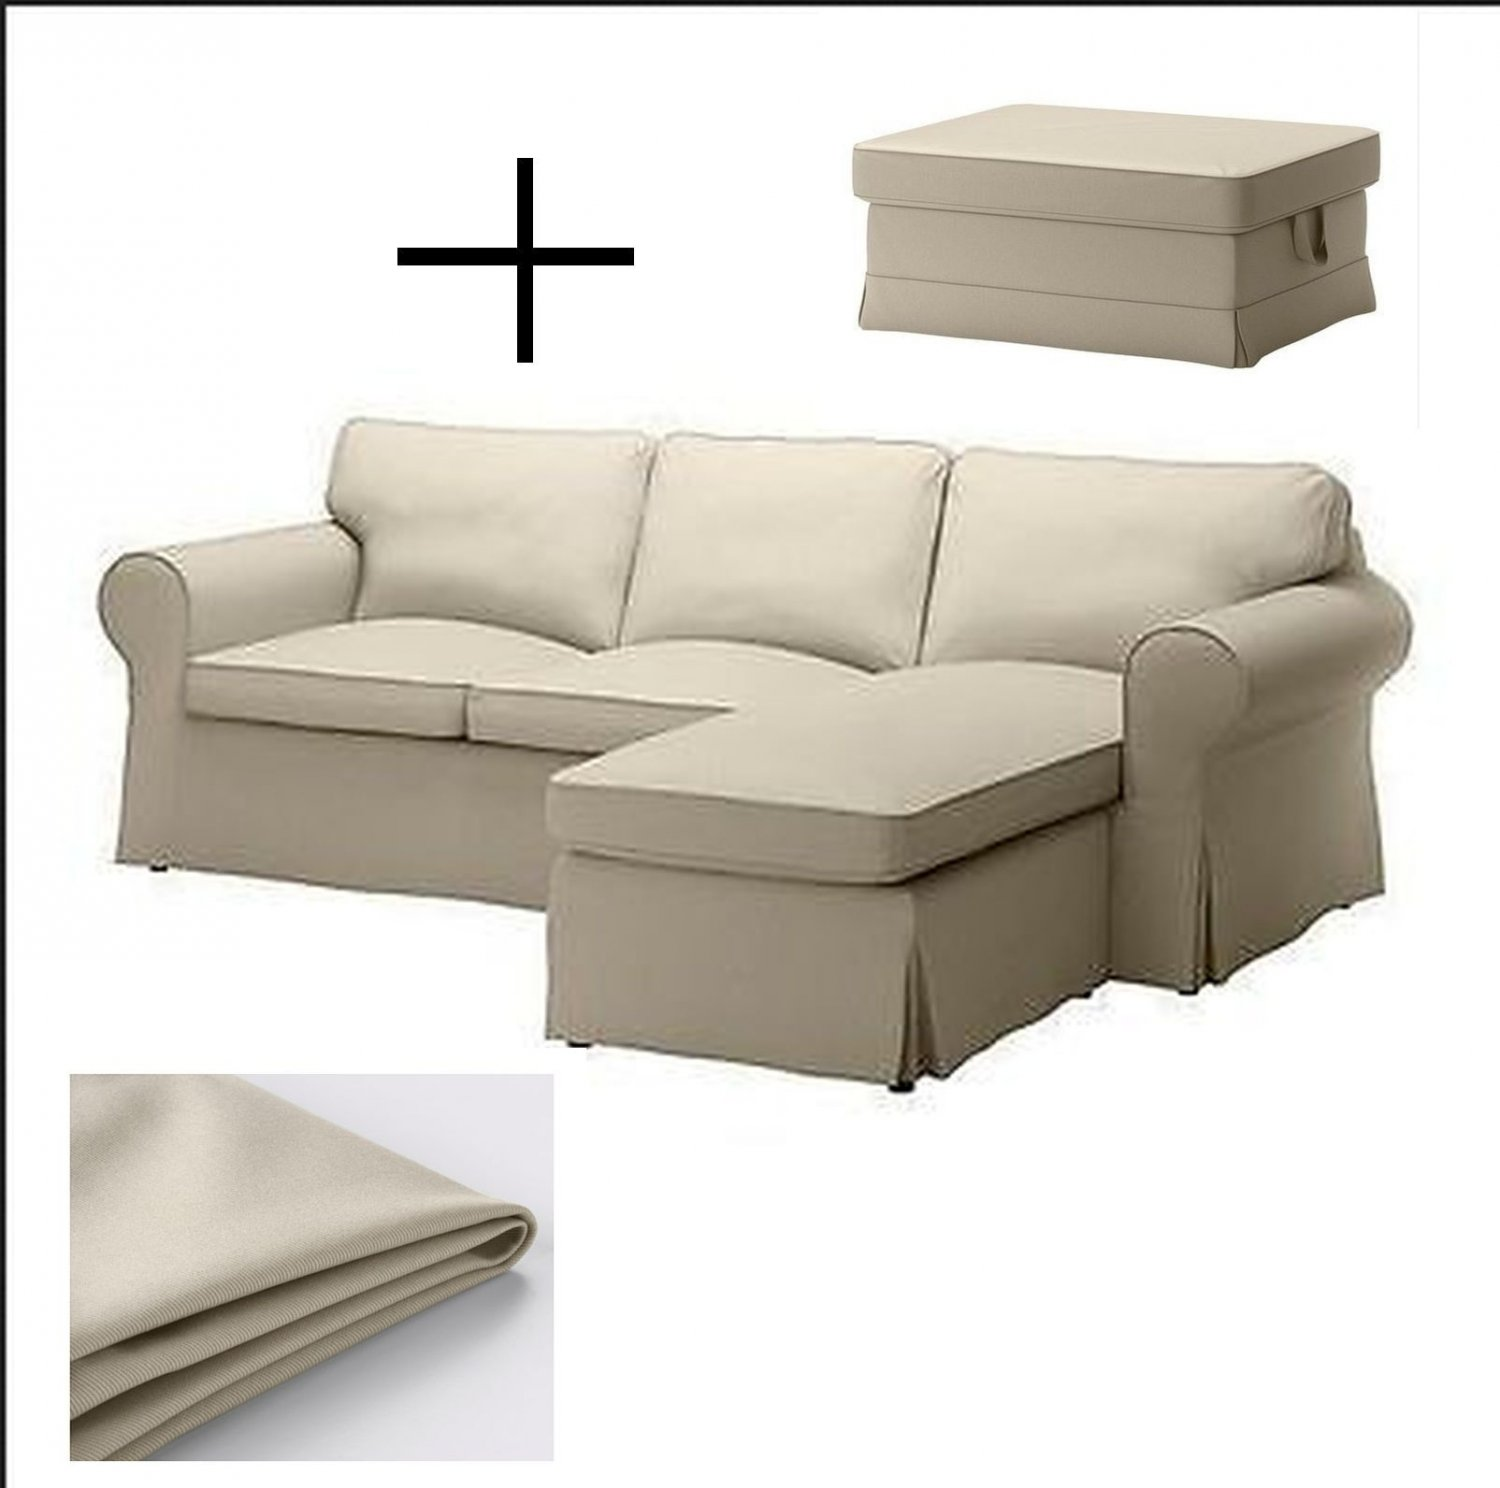 ikea karlanda sofa covers uk baseball sofascore ektorp loveseat w chaise and footstool ottoman